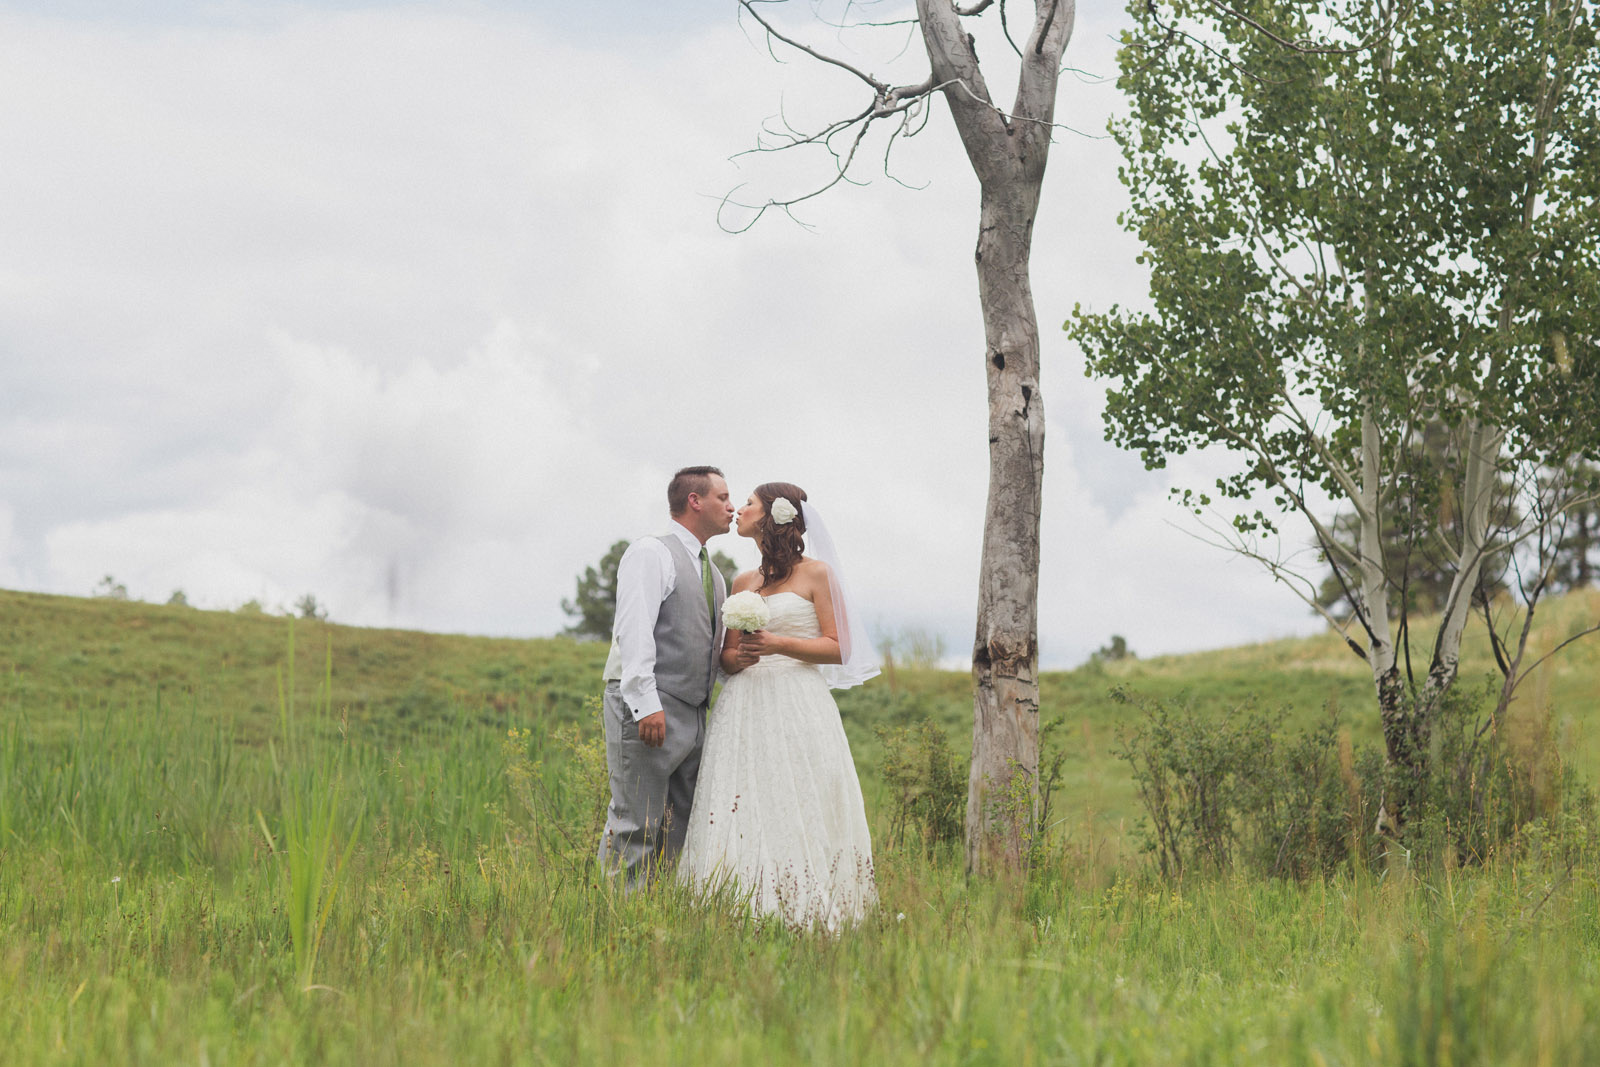 080-lake-trees-groom-bride-wedding-cabin-woods-forest-pictures-photos-dress-photography-portraits-first-look-firstlook-reveal-happy-farmington-aztec-durango-mancos-co-nm